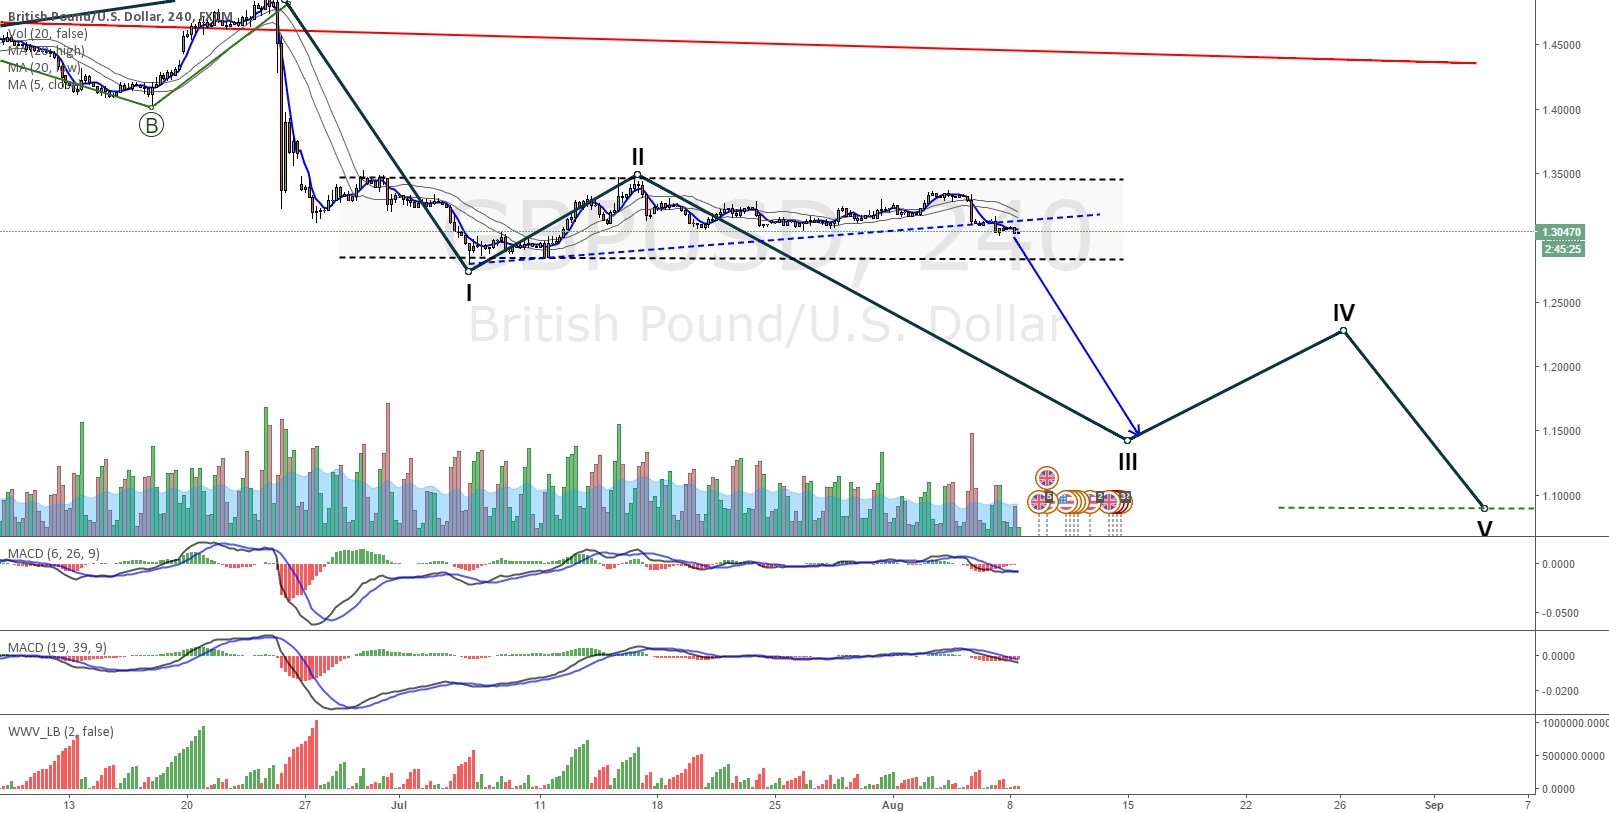 GBPUSD wait for break of channel